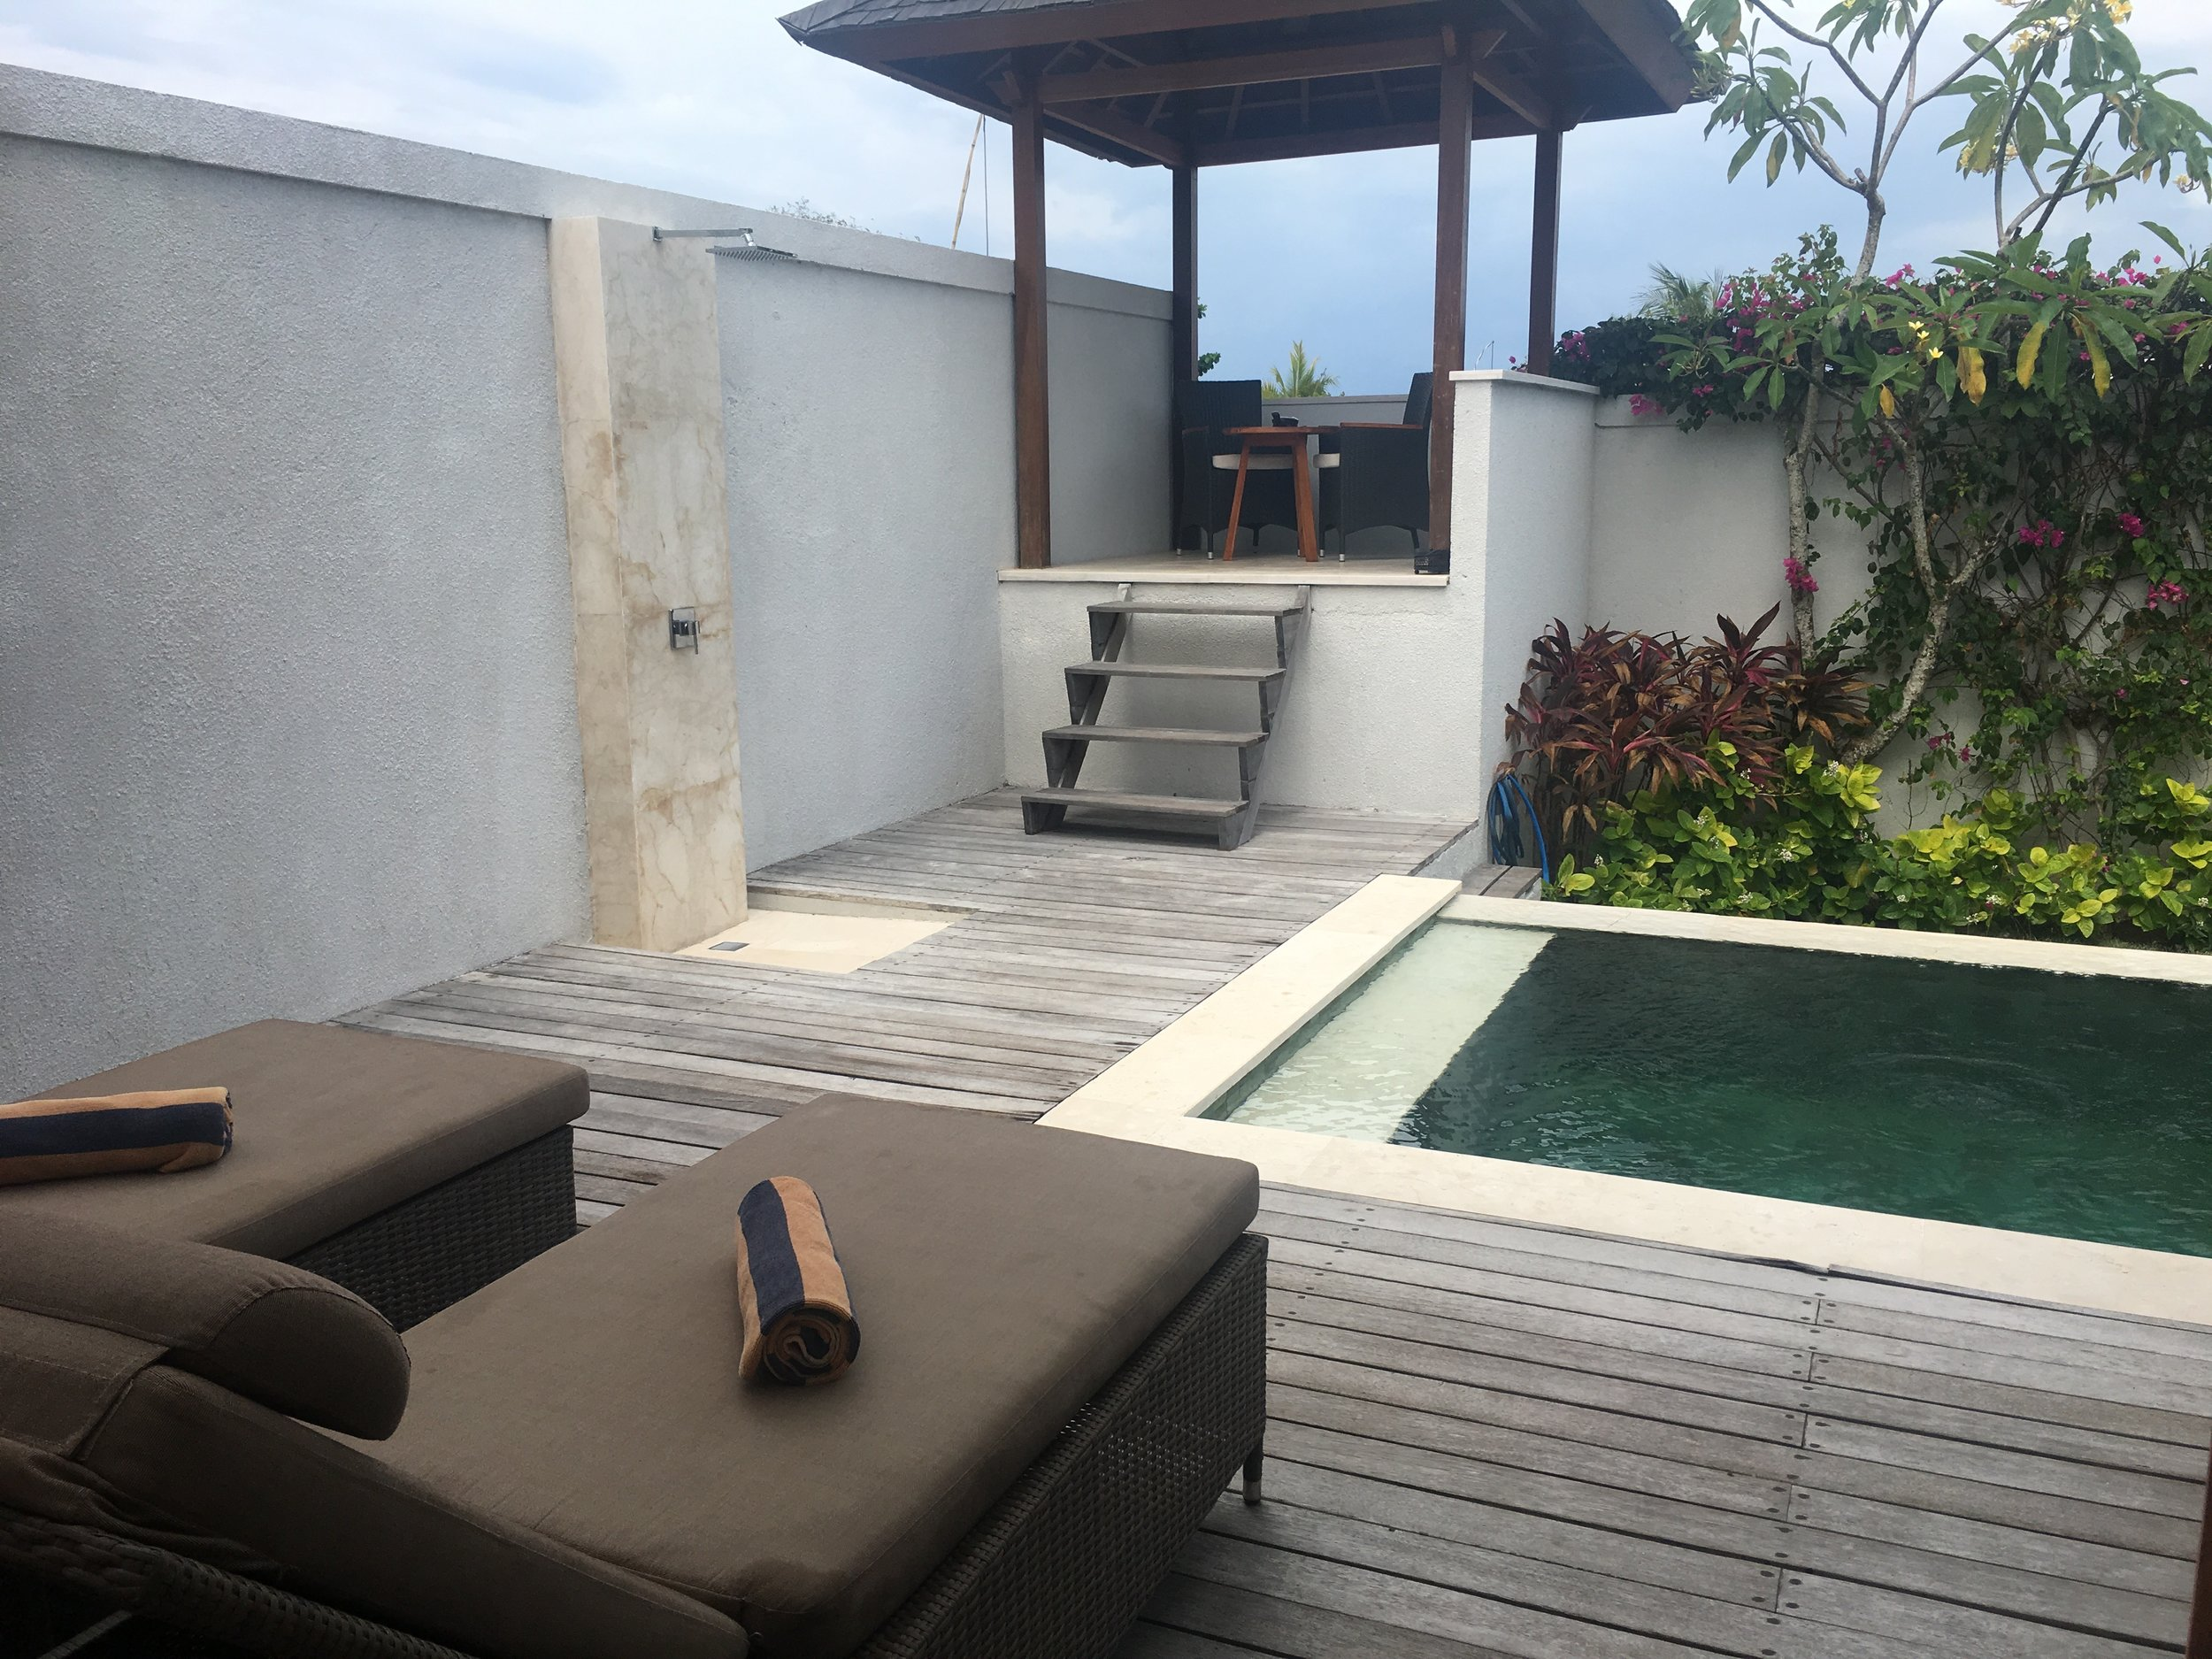 Sun loungers by the pool, an outdoor shower and a sea view from the shaded seating area